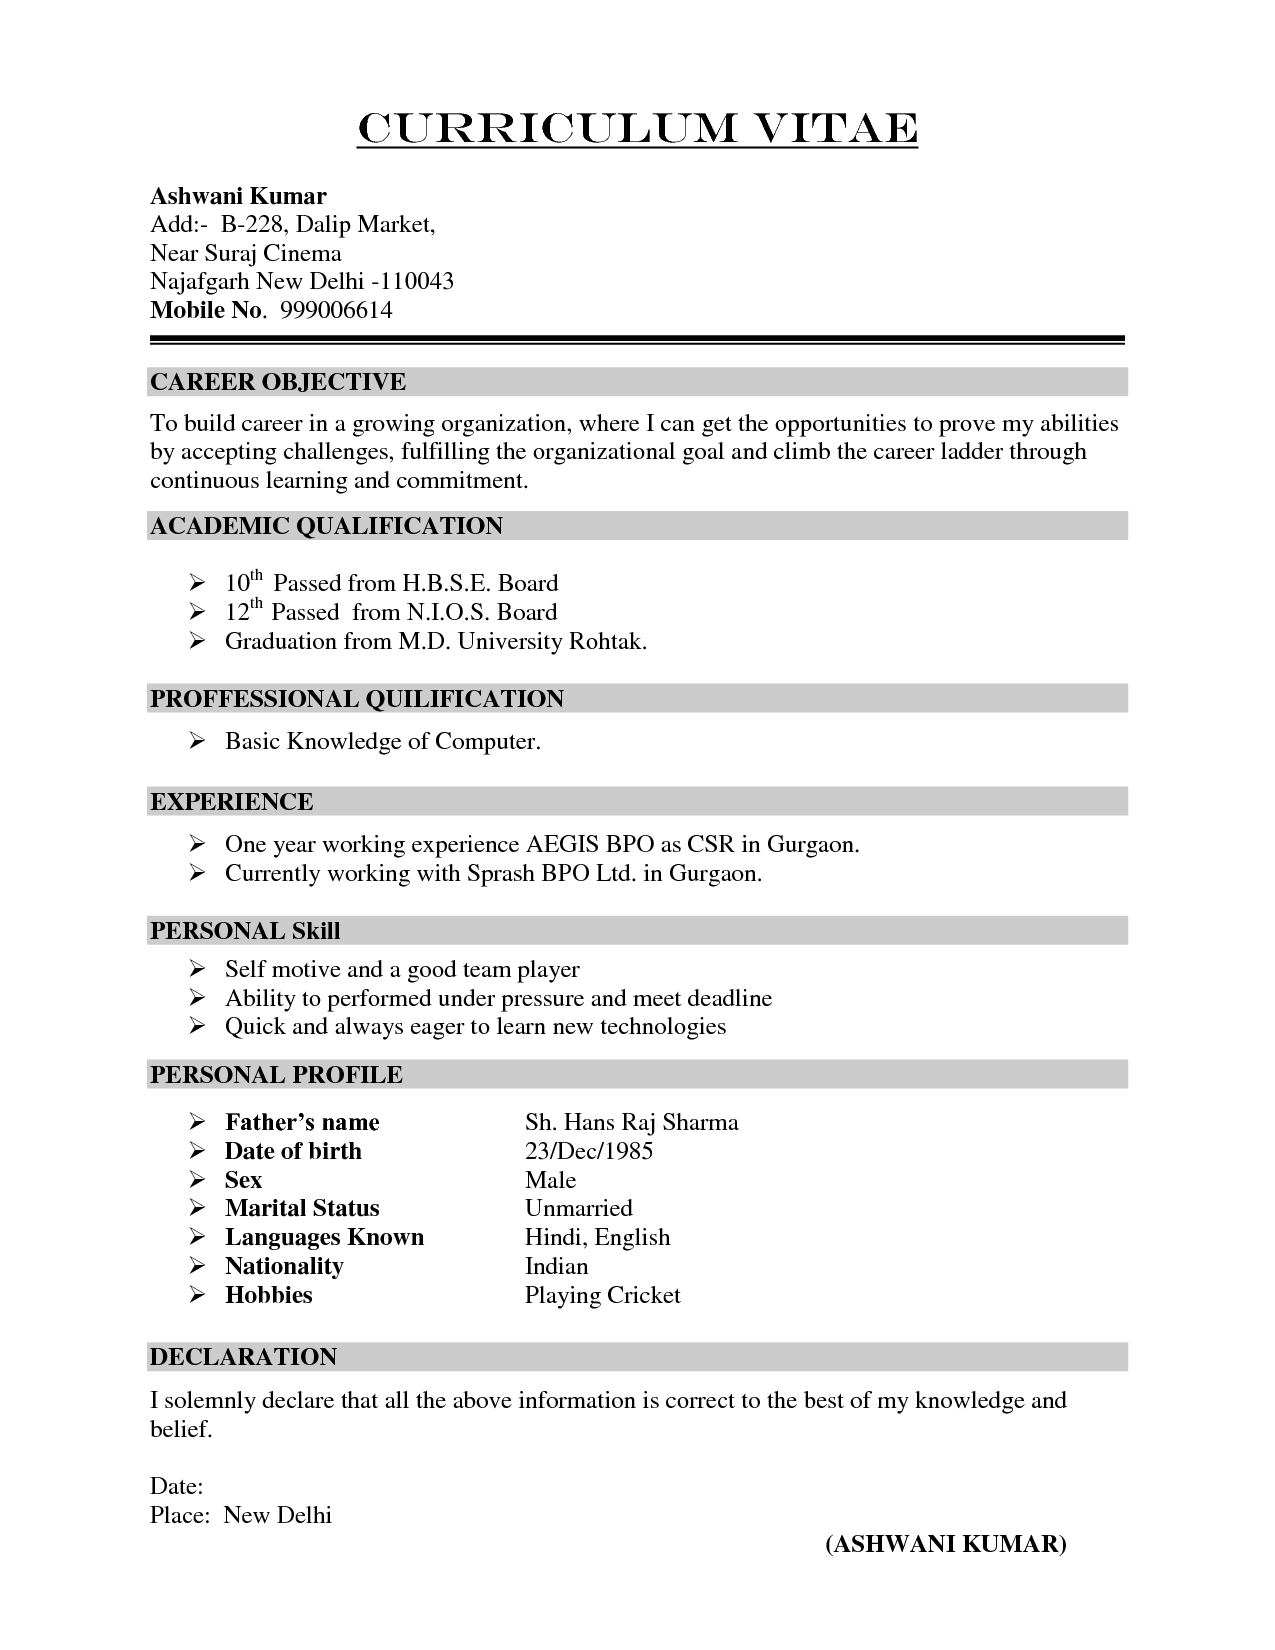 Qualifications For A Resume Examples F Ea A A The Most Resume Resume Formt  Cover Letter Examples  Qualifications On A Resume